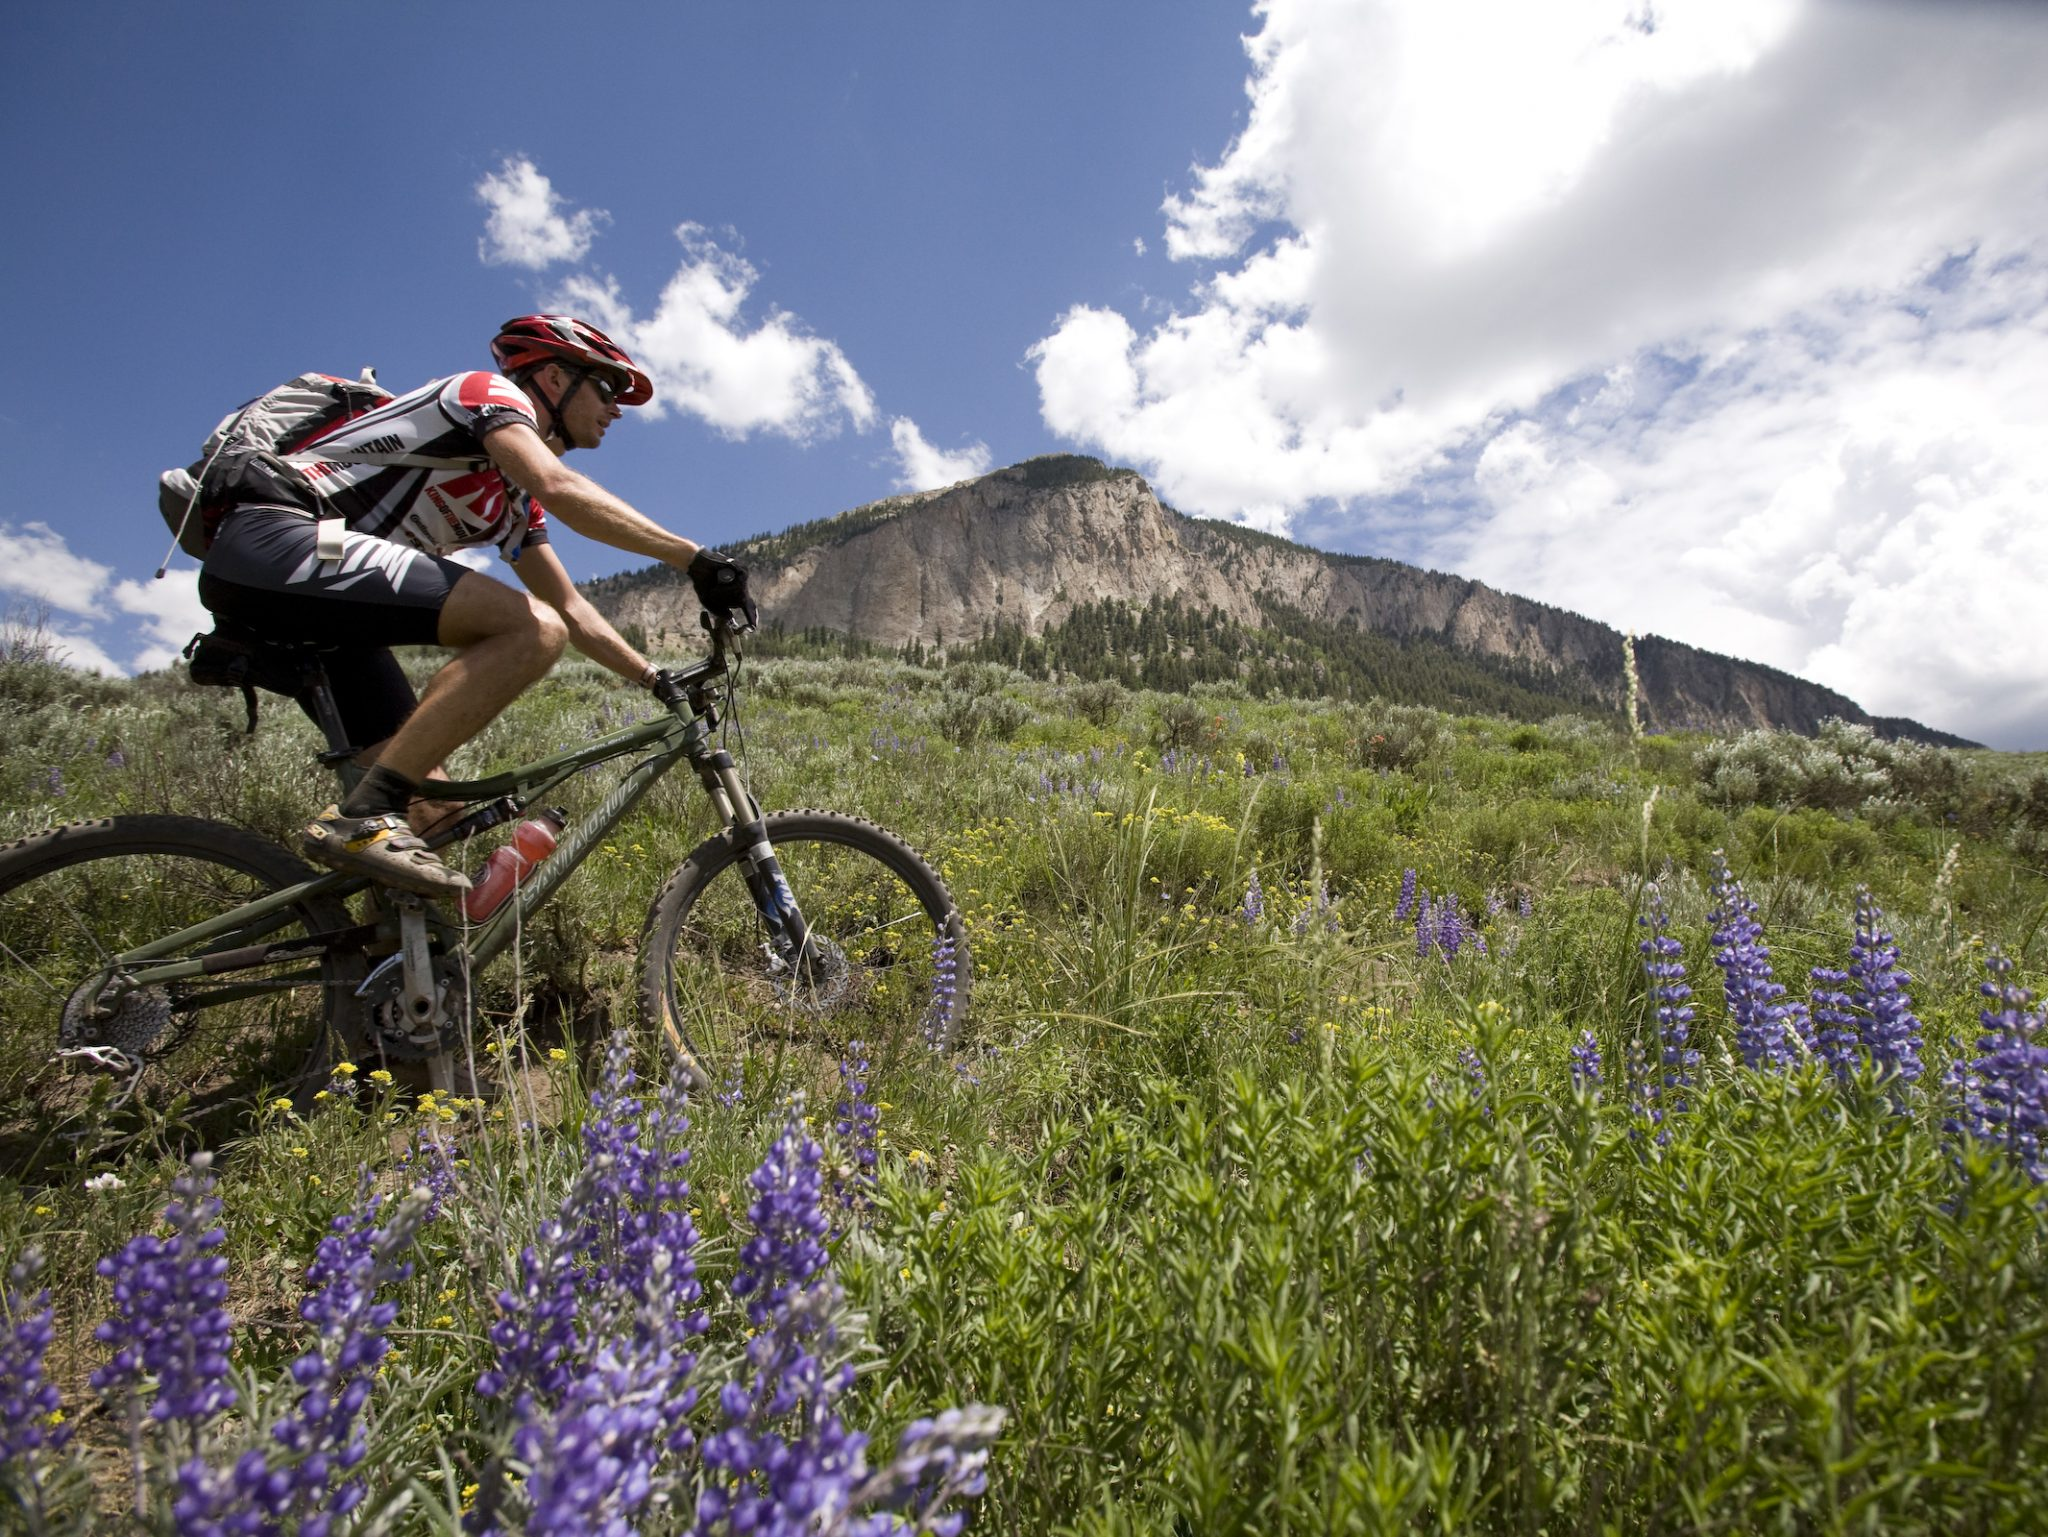 Our guided mountain bike tour of the Colorado Trail is the most advanced multi-day tour available